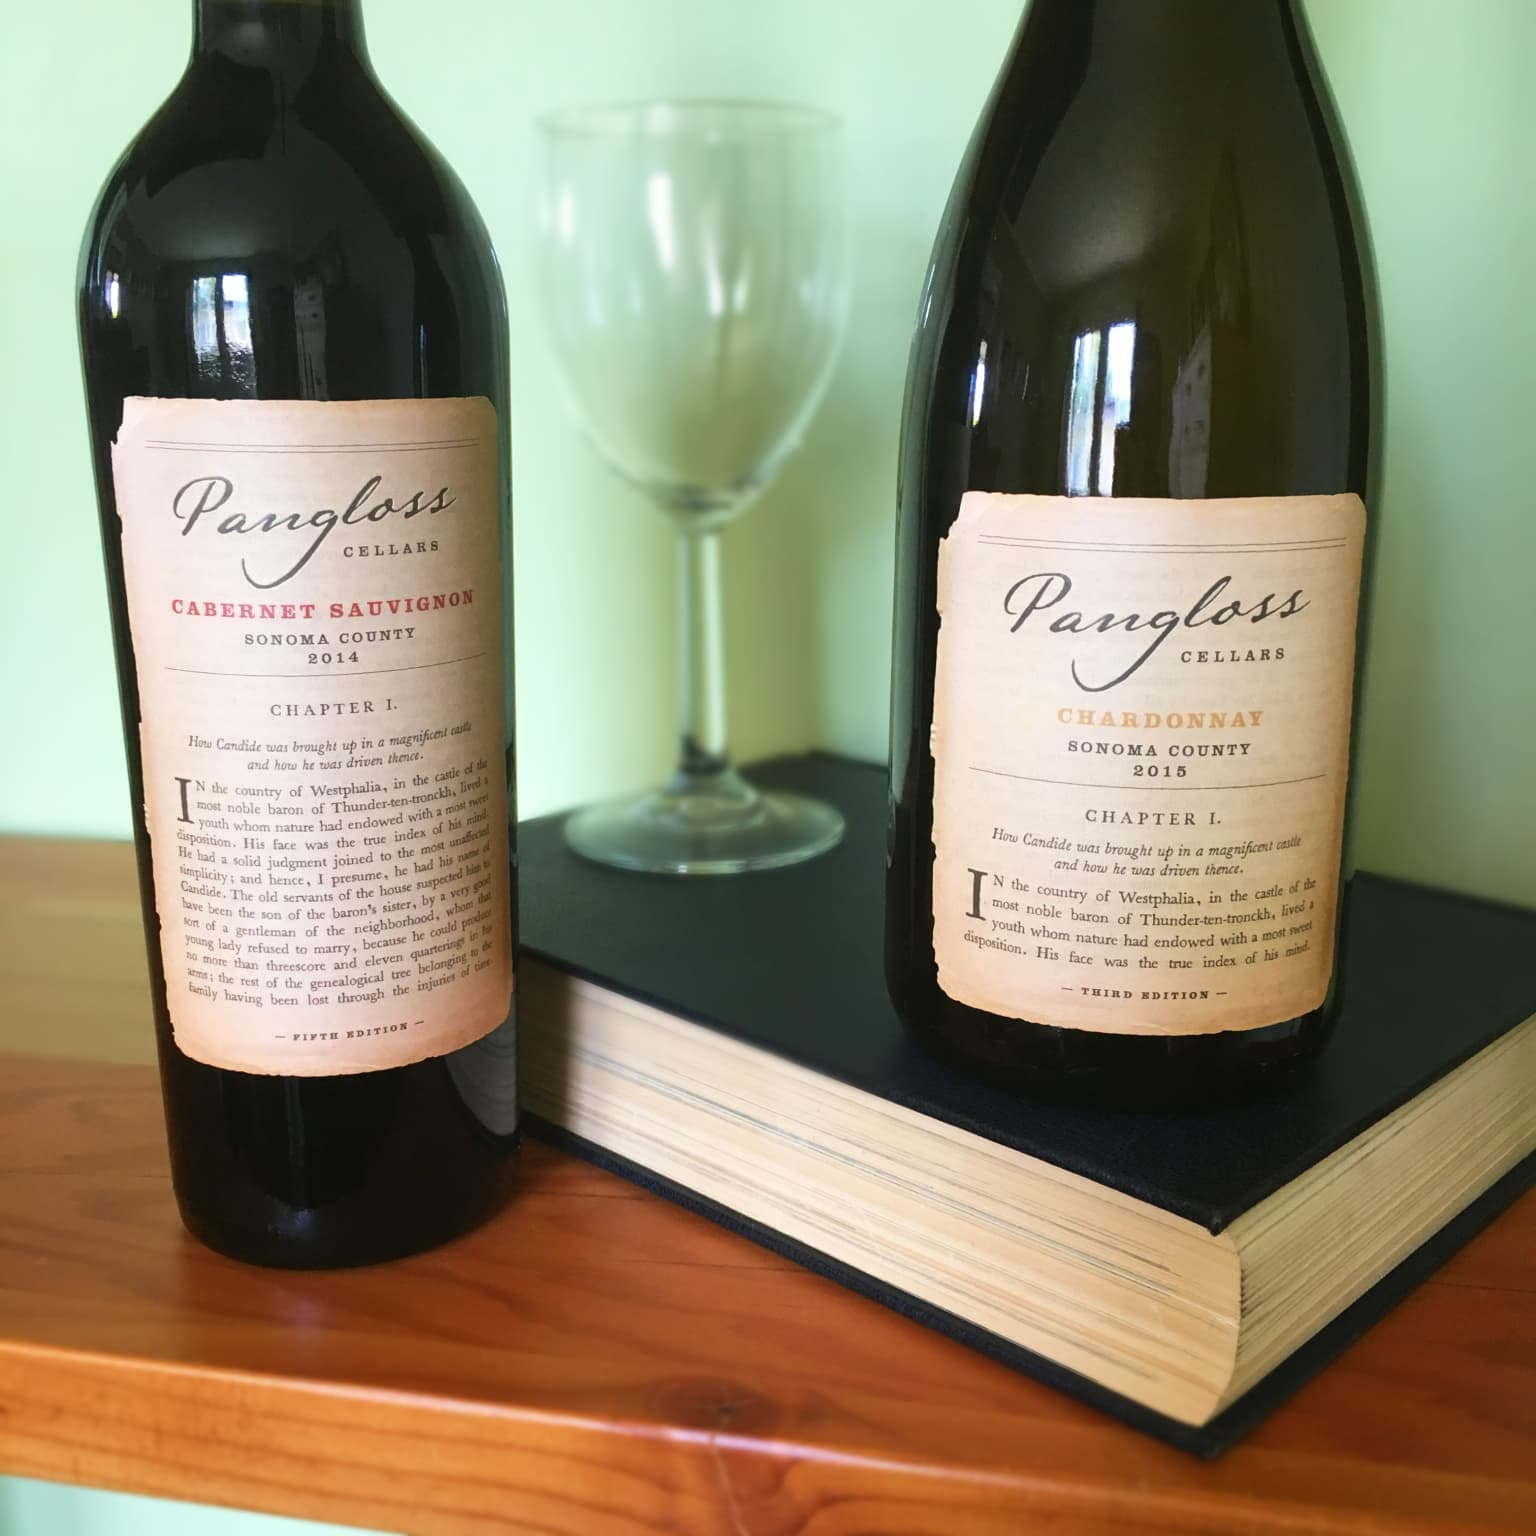 Pangloss wine labels